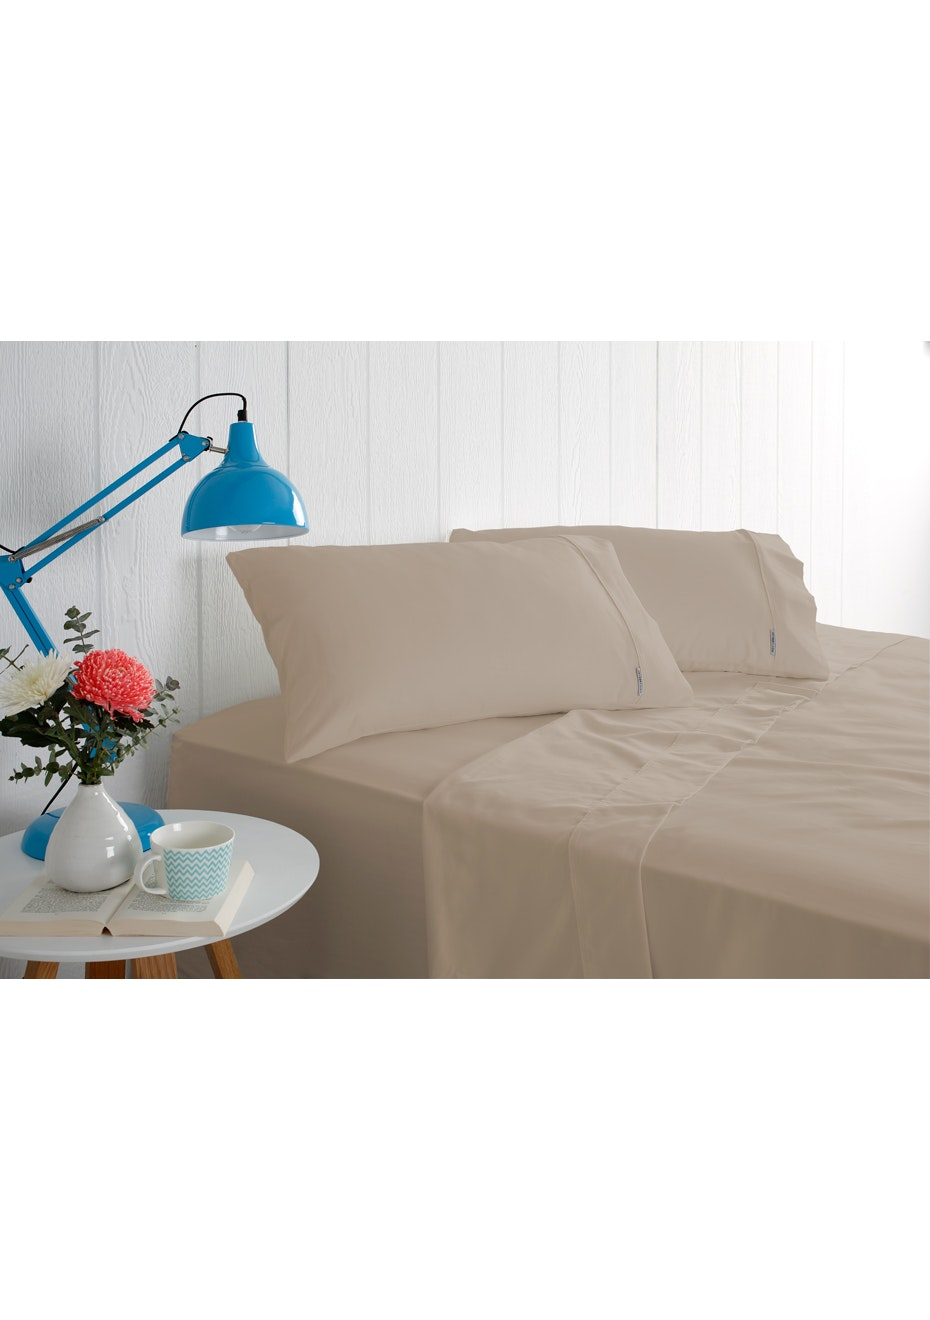 Odyssey Living 1000 Thread Count – Cotton Rich Sheet Sets - Linen - Single Bed